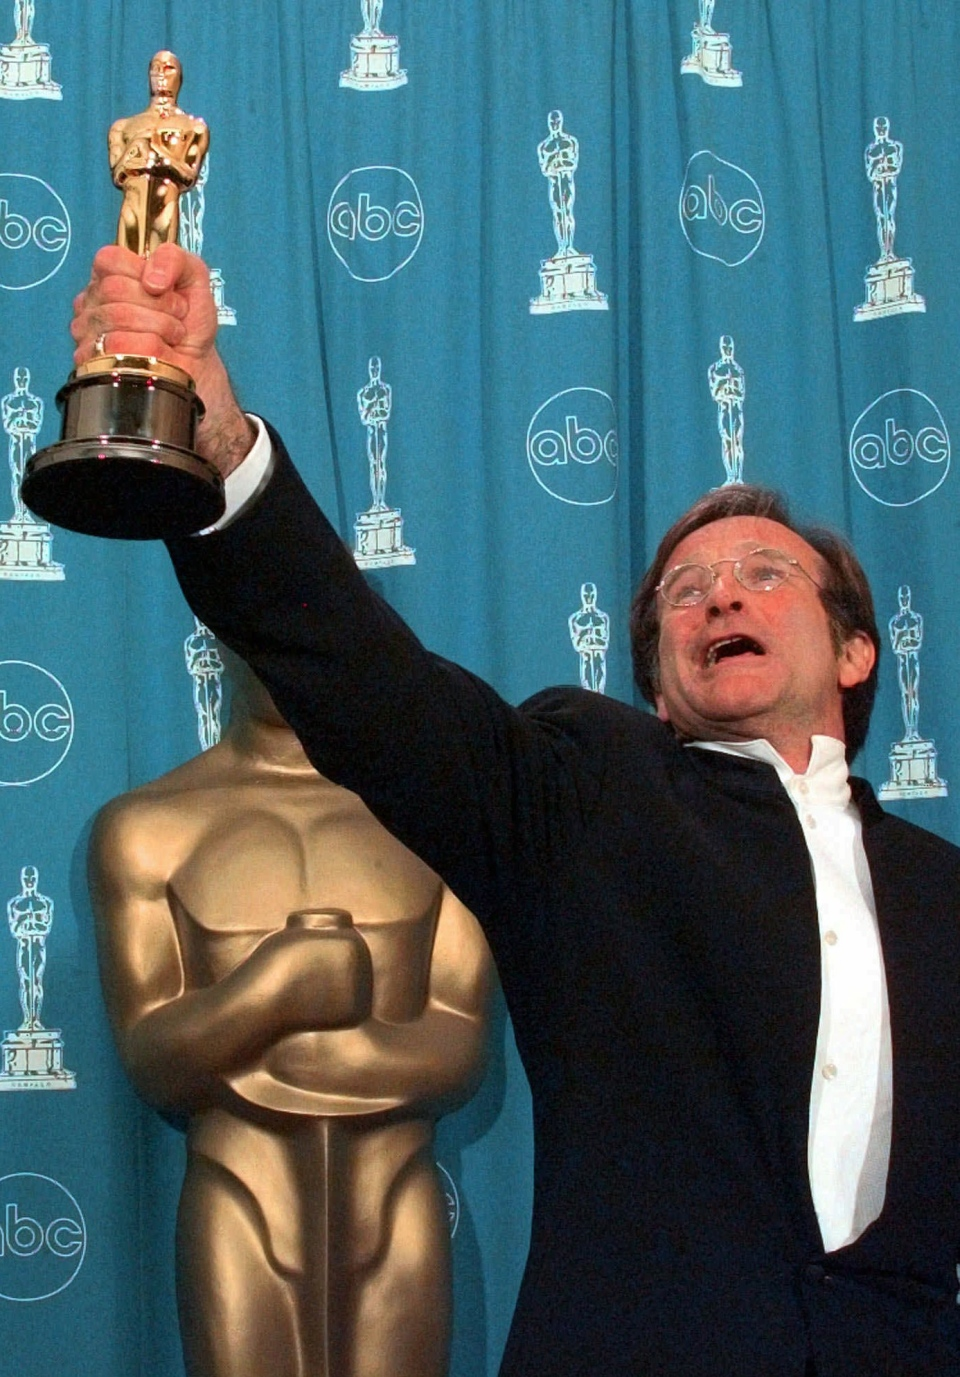 """Robin Williams holding his Oscar high backstage at the 70th Academy Awards at the Shrine Auditorium in Los Angeles after won Best Supporting Actor for """"Good Will Hunting"""" on March 23, 1998. (AP / Reed Saxon)"""